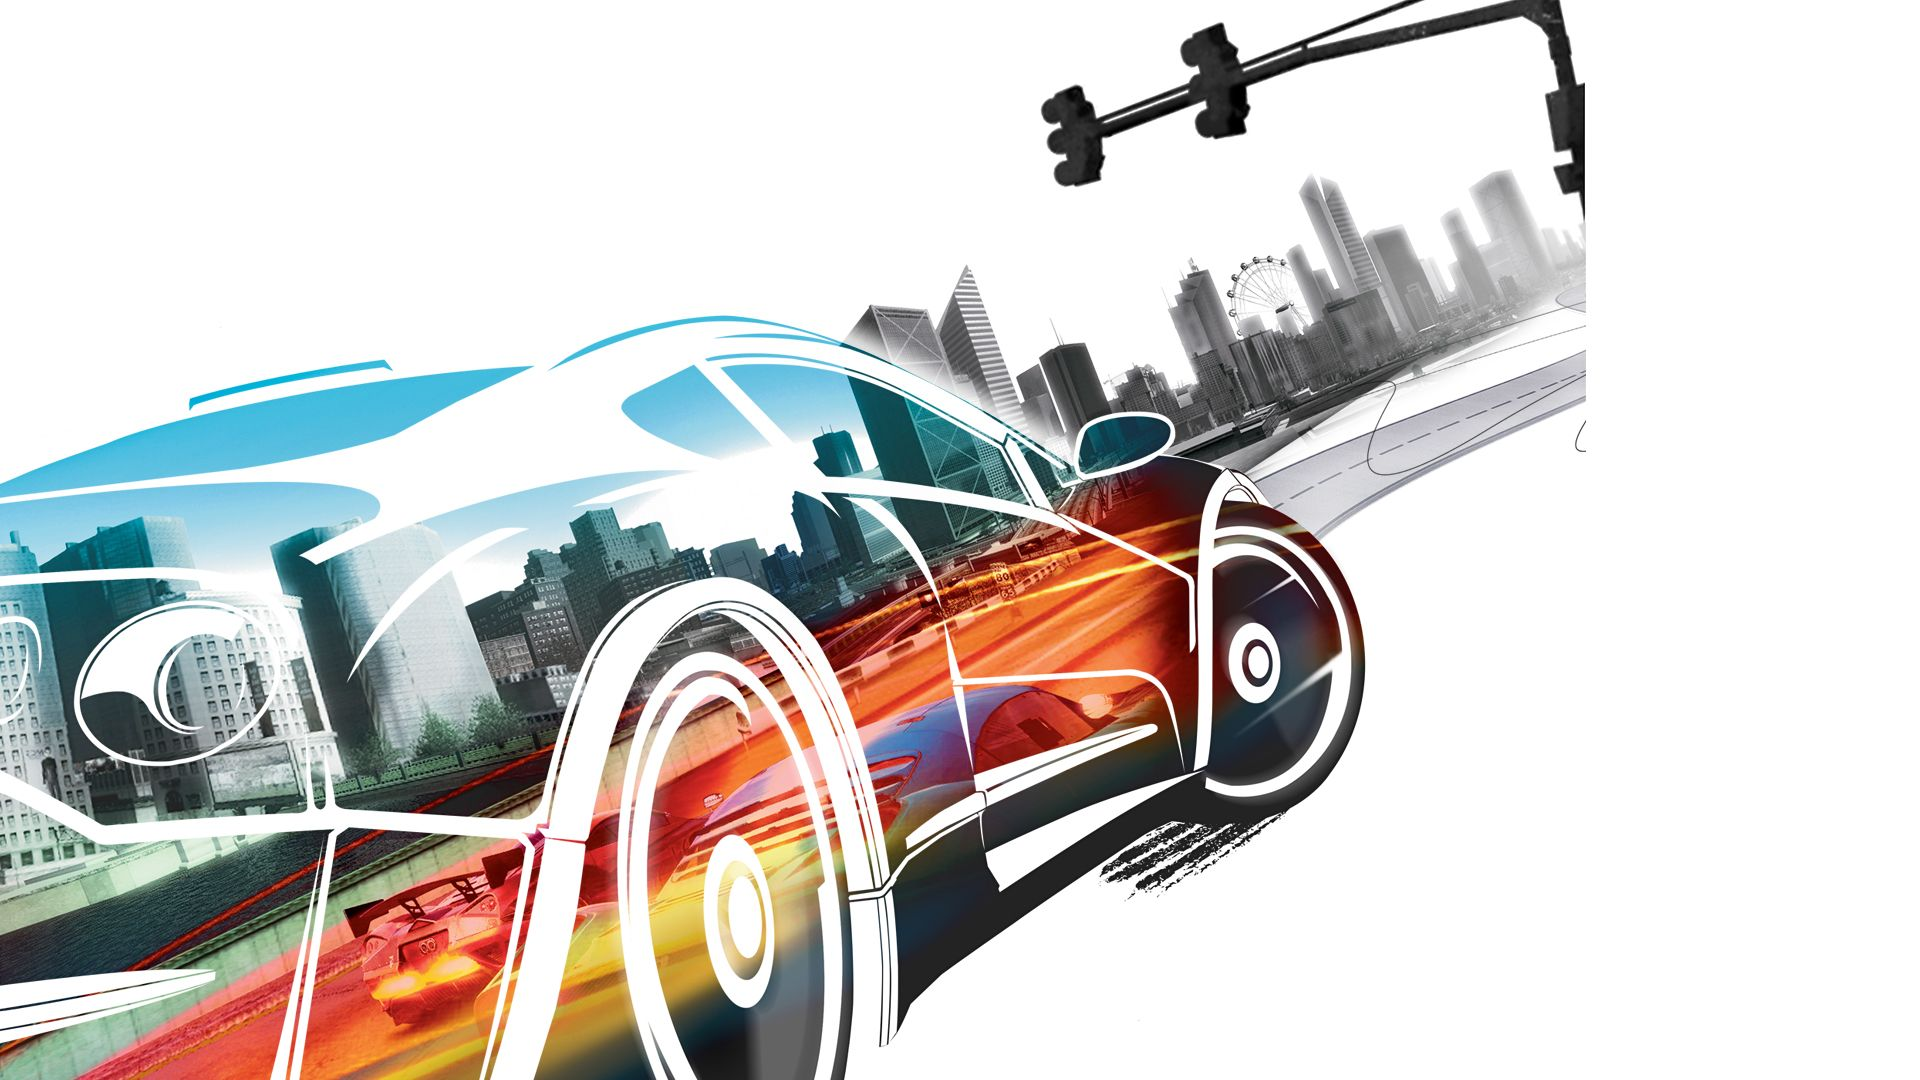 Burnout Paradise is being remastered and it's coming to PS4